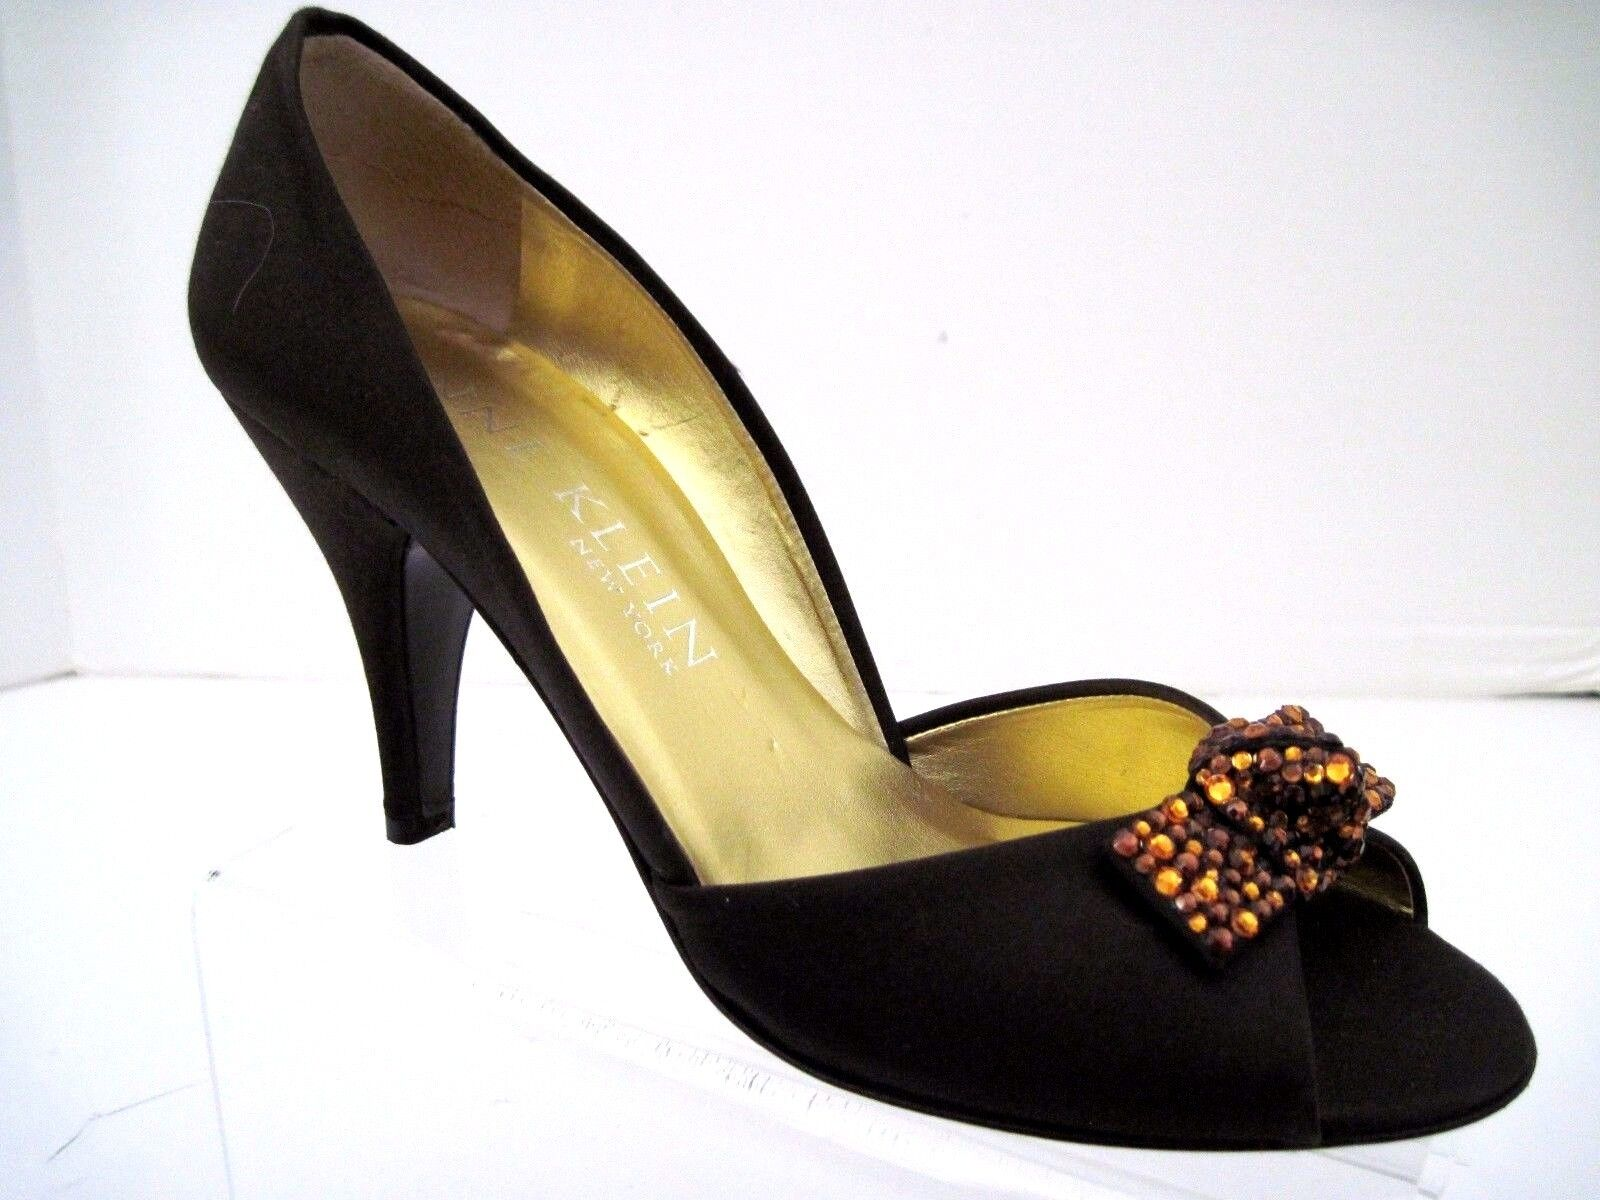 ANNE KLEIN Bronze New York Brown Satin Bronze KLEIN Jewels Open Toe Heels Size 7 1/2 M Italy 12d463